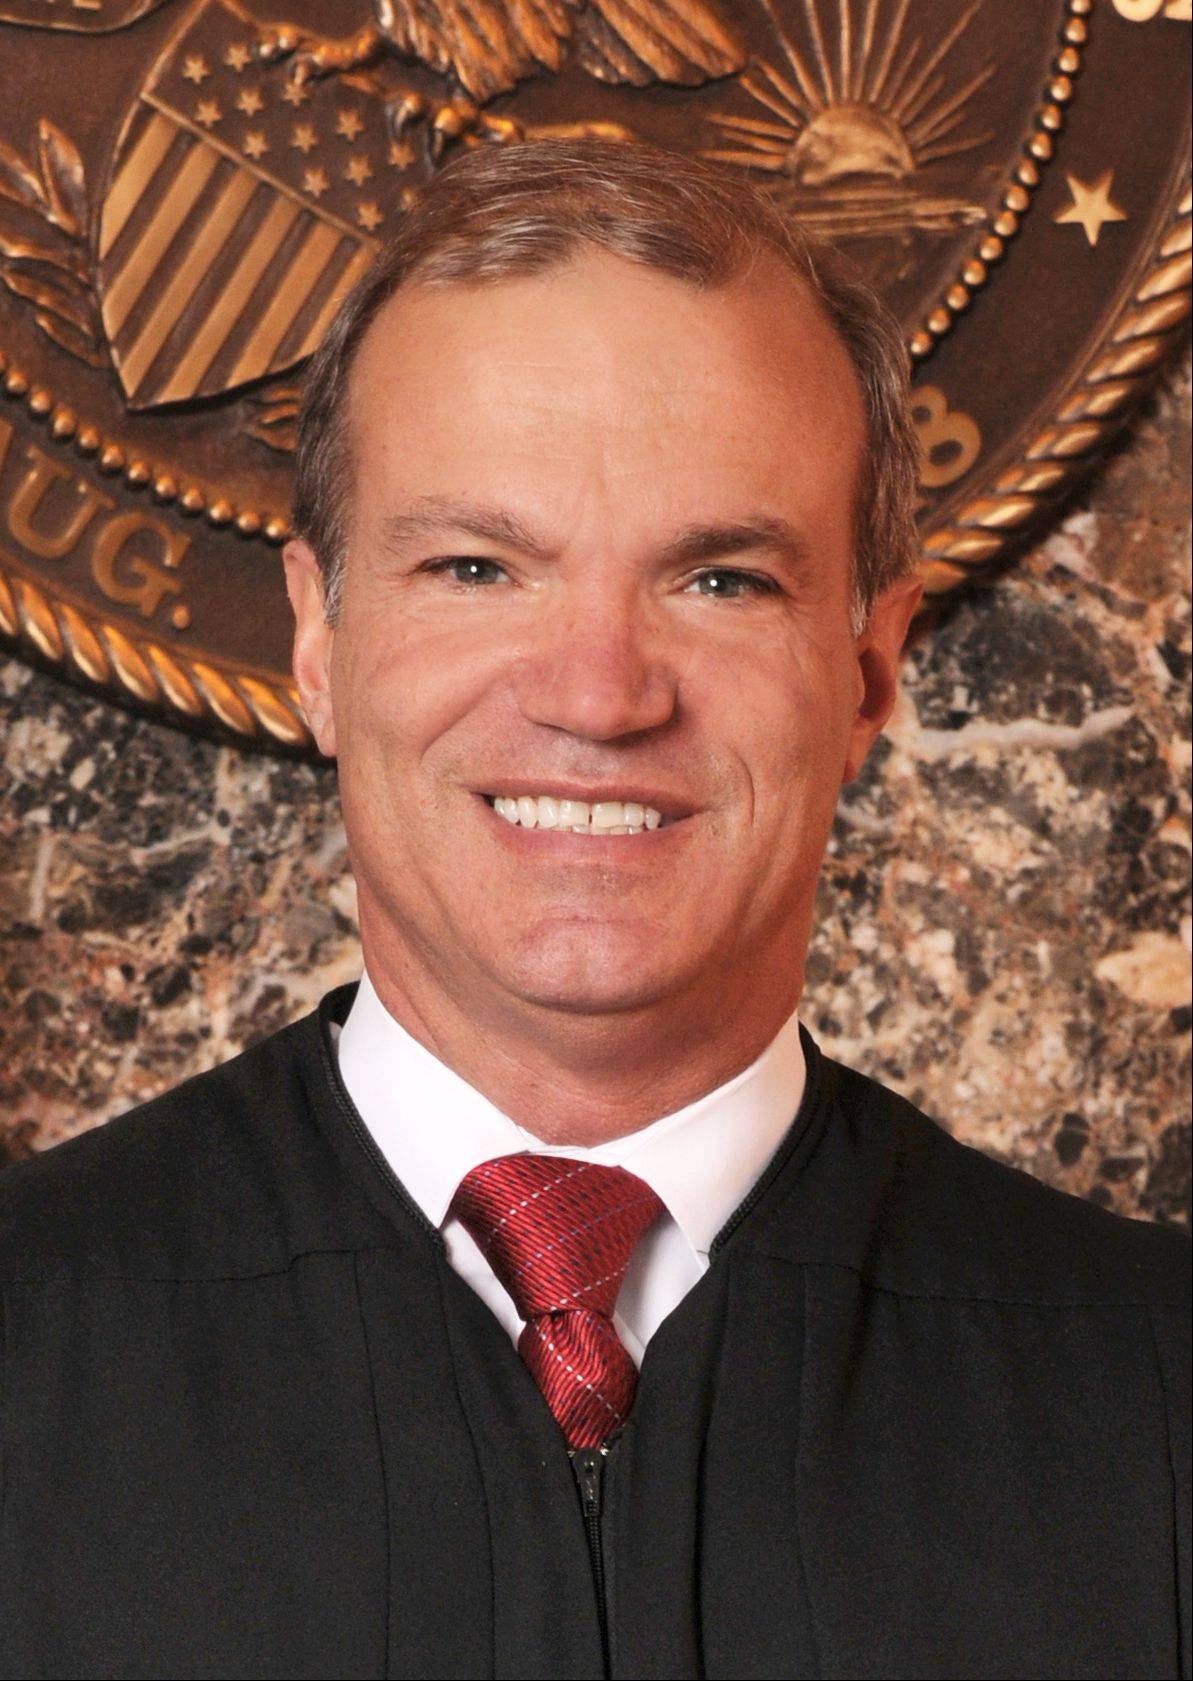 Judge Robert Gibson